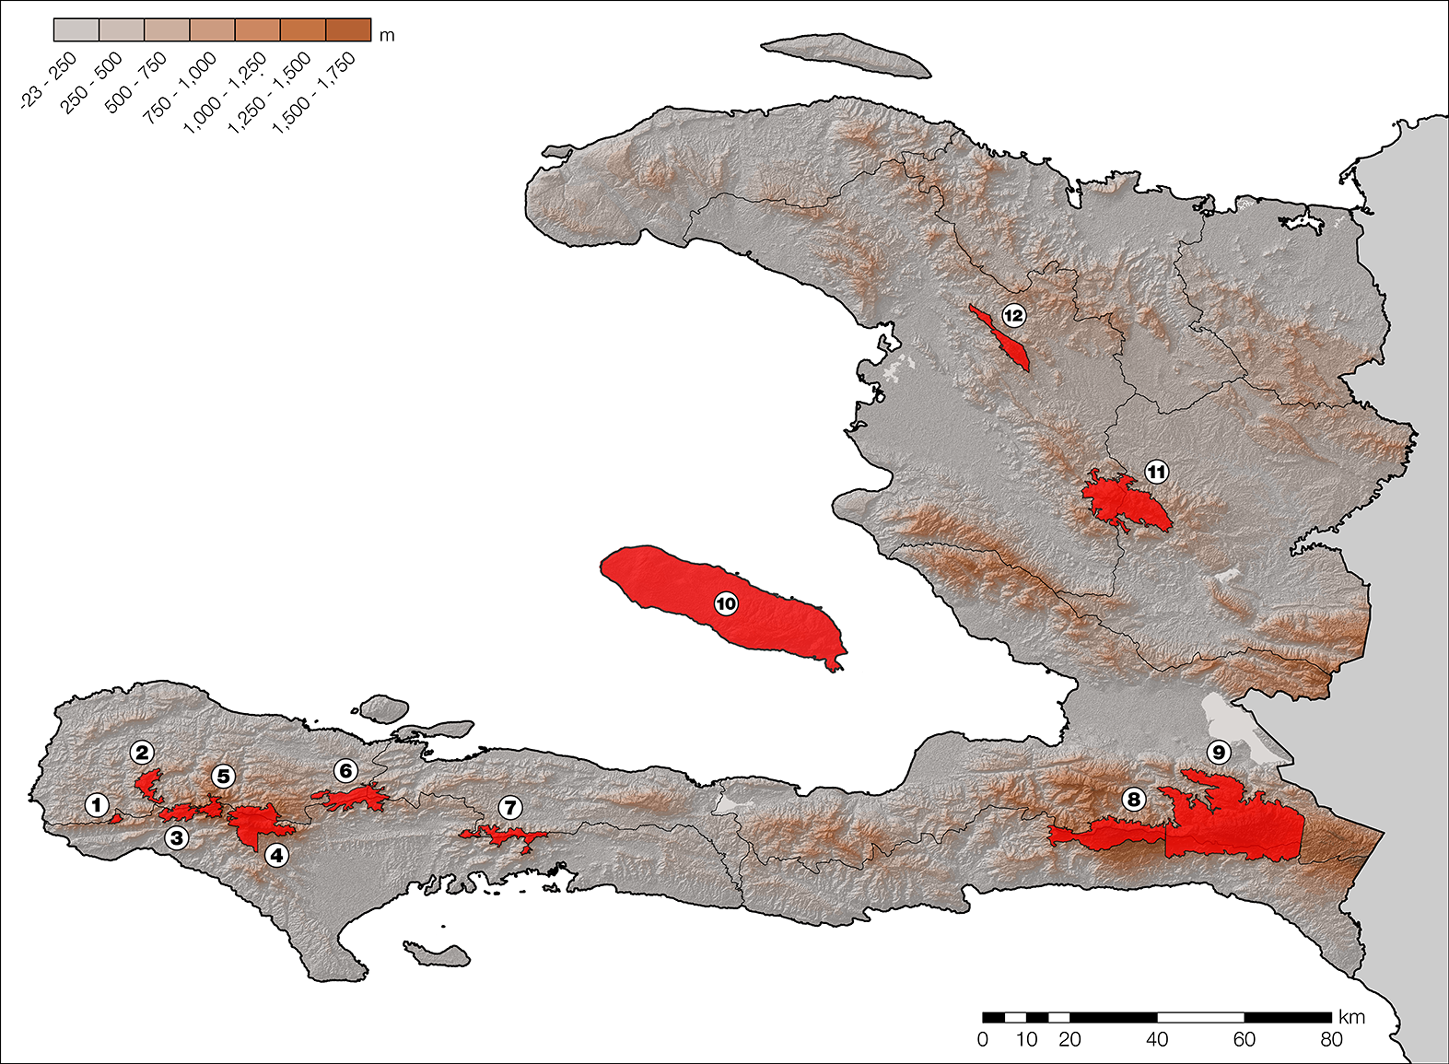 This is a map of Haiti with highlighted hotspot regions